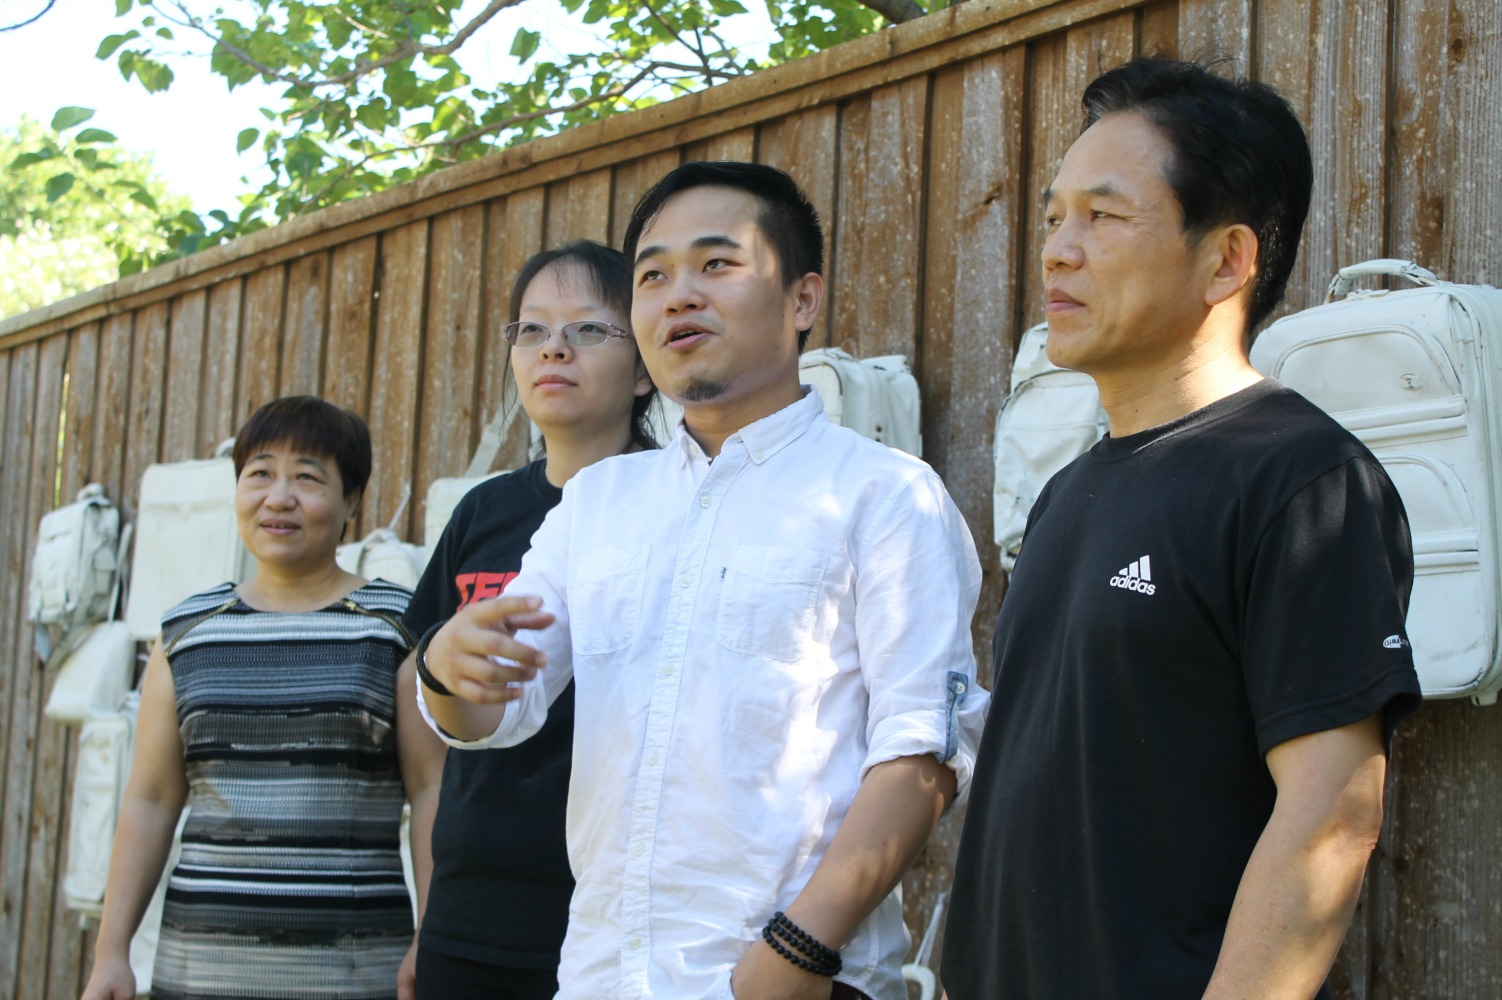 zhang and family